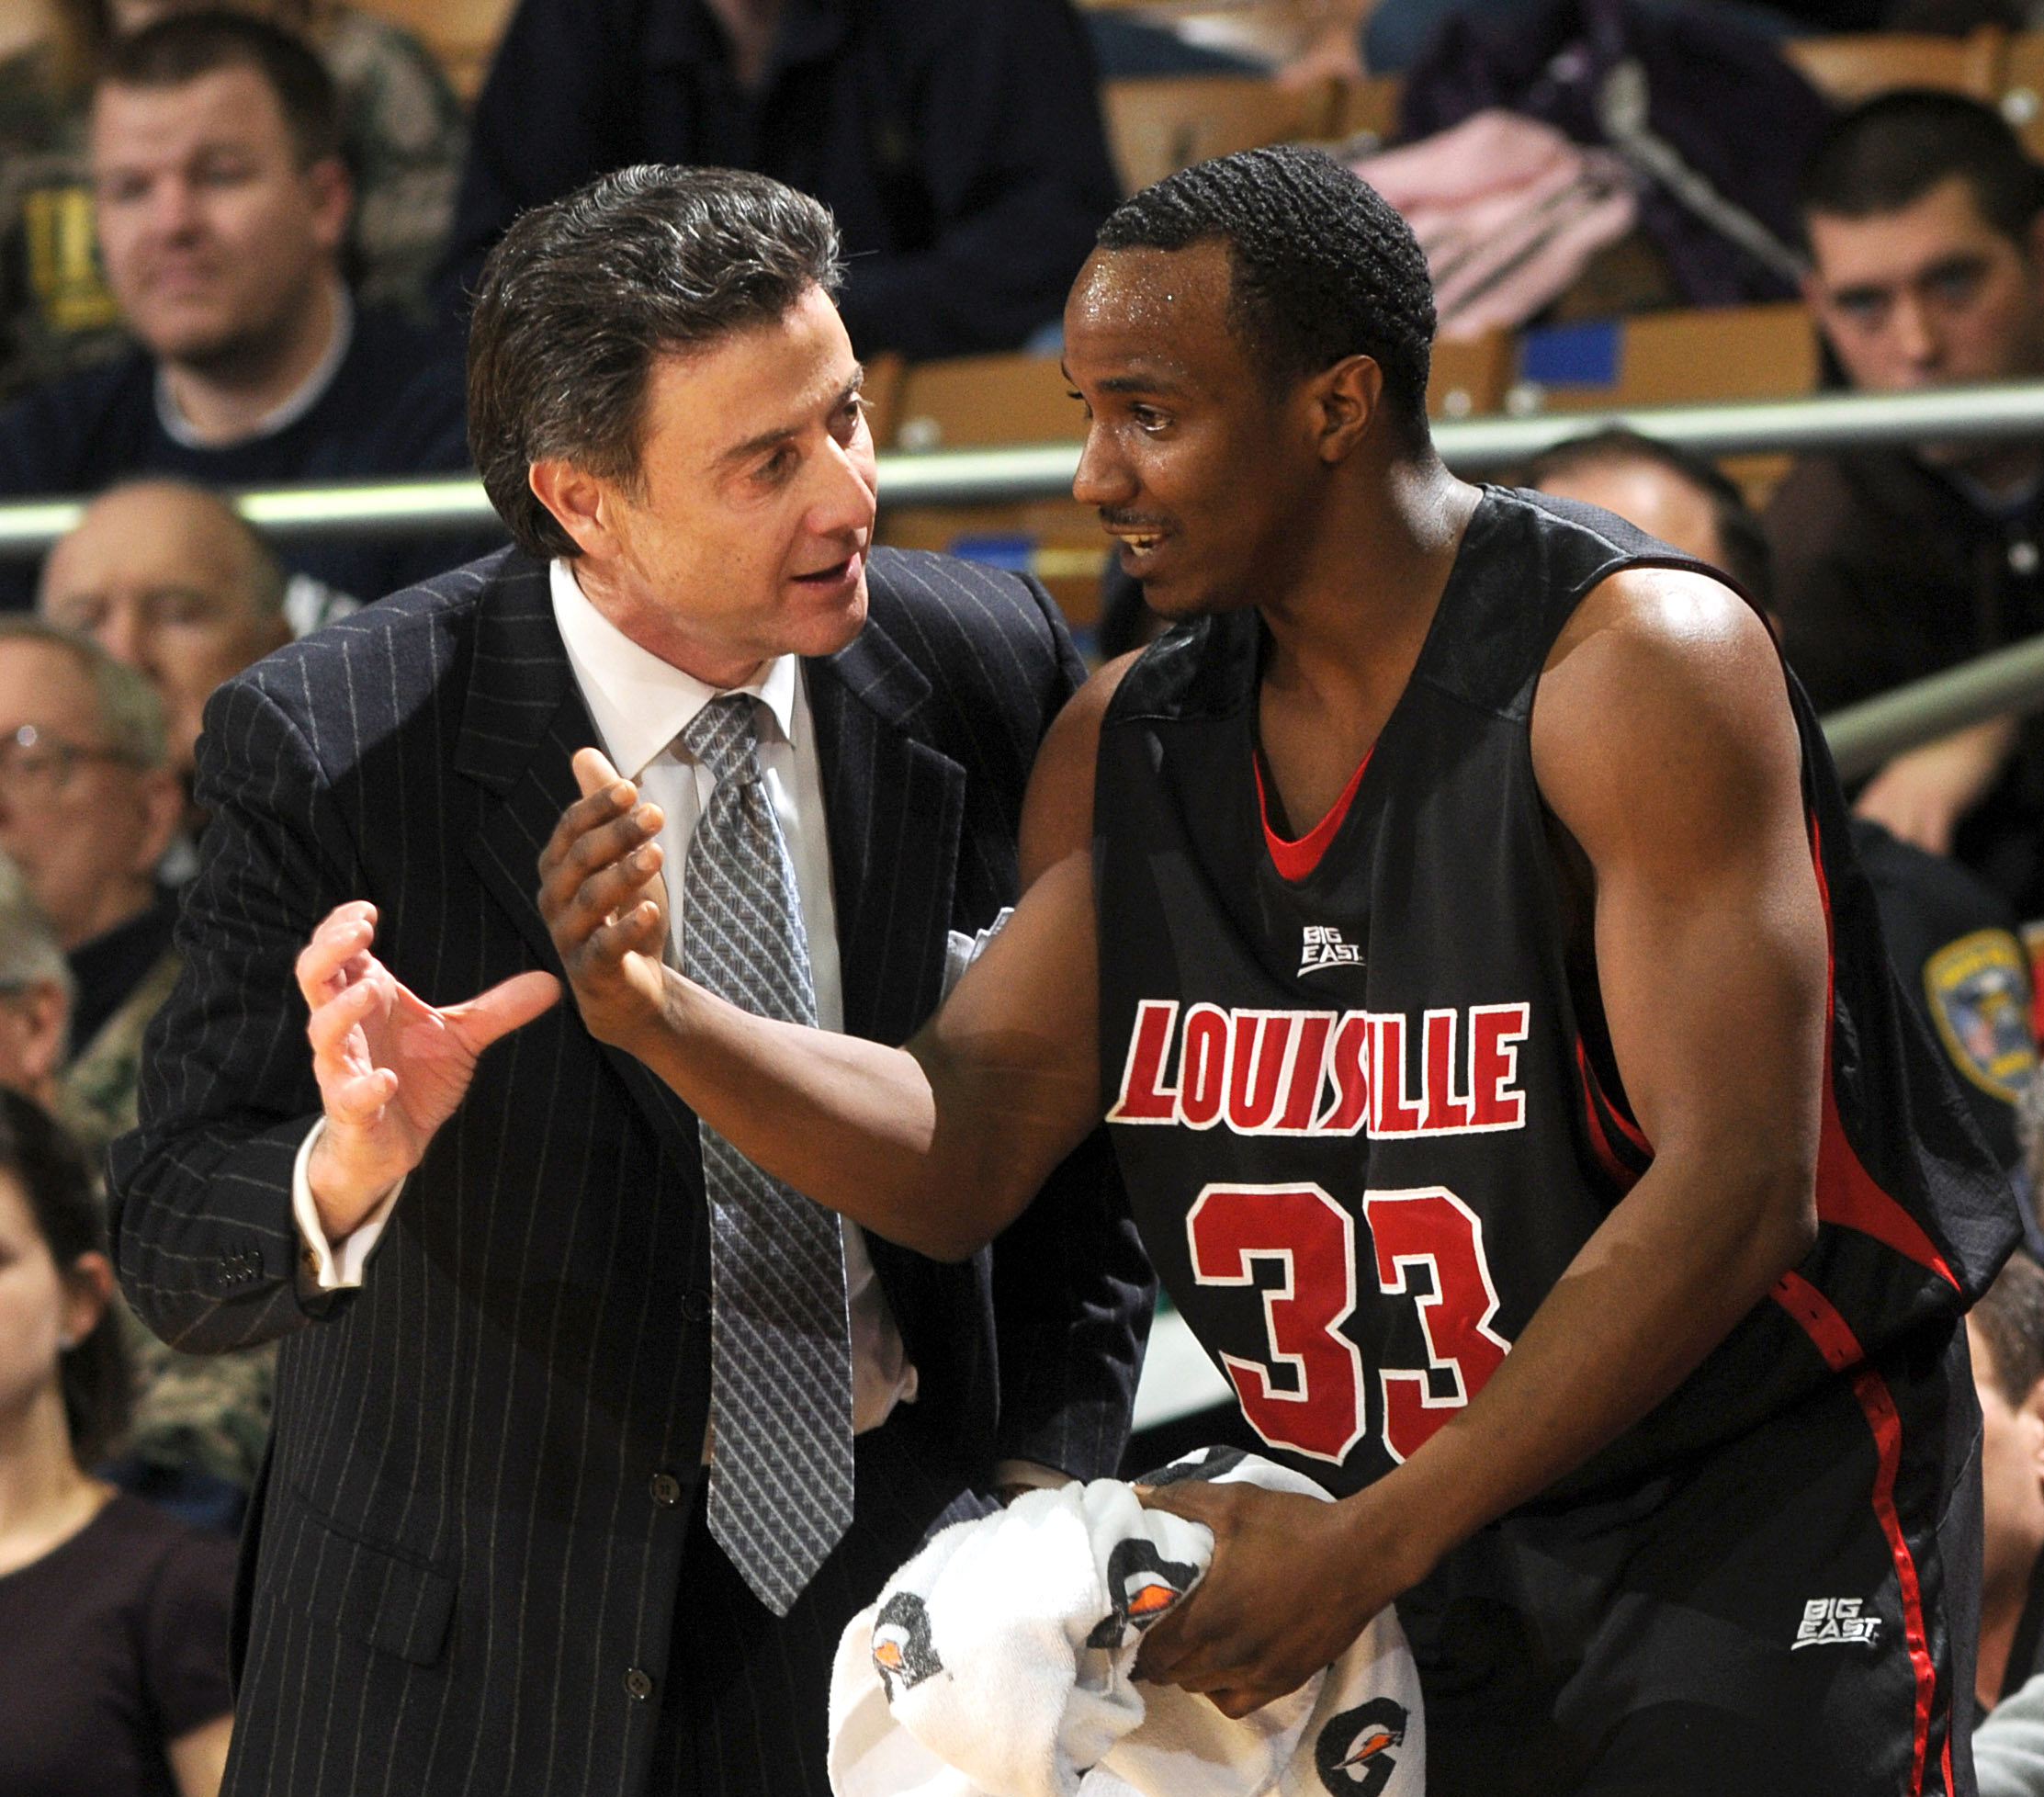 FILE - In this Feb. 12, 2009, file photo Louisville coach Rick Pitino, left, talks with guard Andre McGee during the first half of an NCAA college men's basketball game against Notre Dame in South Bend, Ind. Escort Katina Powell says she has no proof that